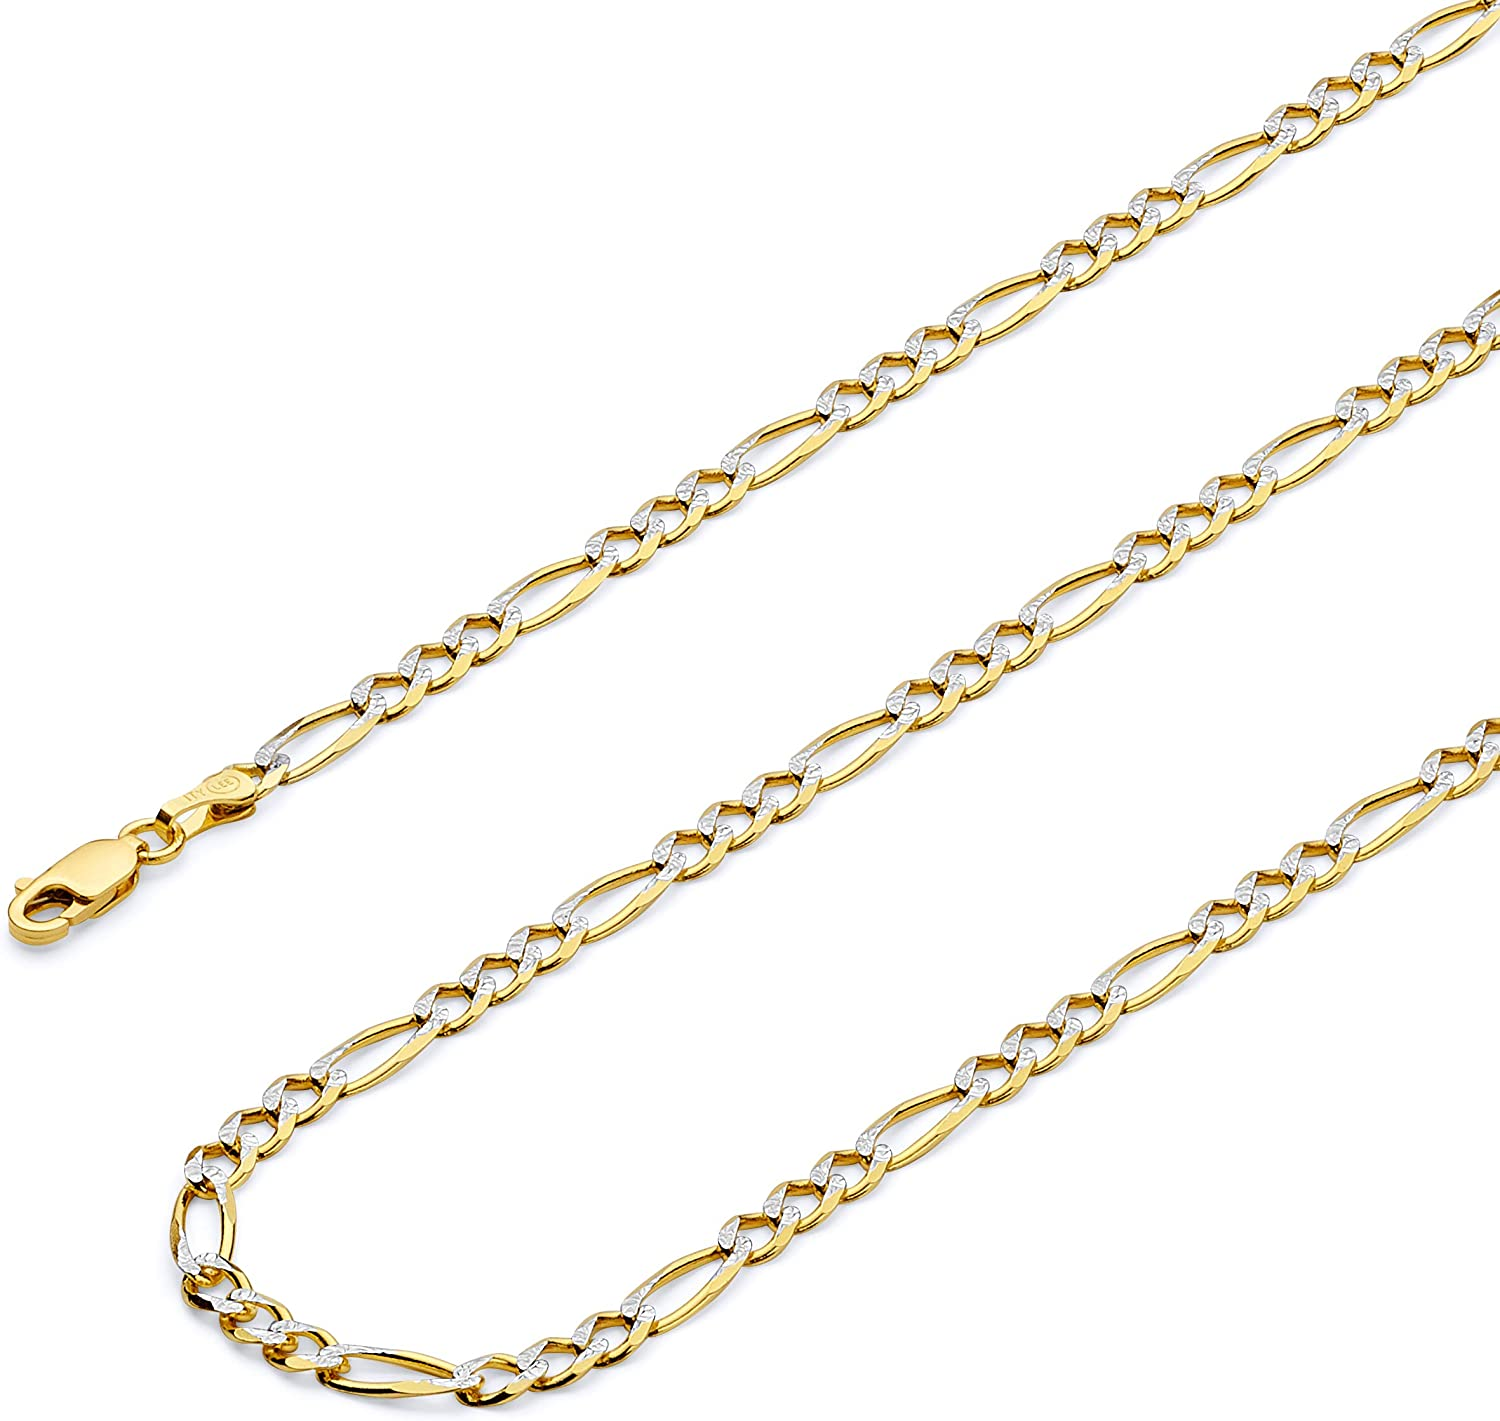 Max 80% OFF TWJC 14k REAL Two Tone Gold Solid 4mm Figaro Store 3+1 Pav White Men's